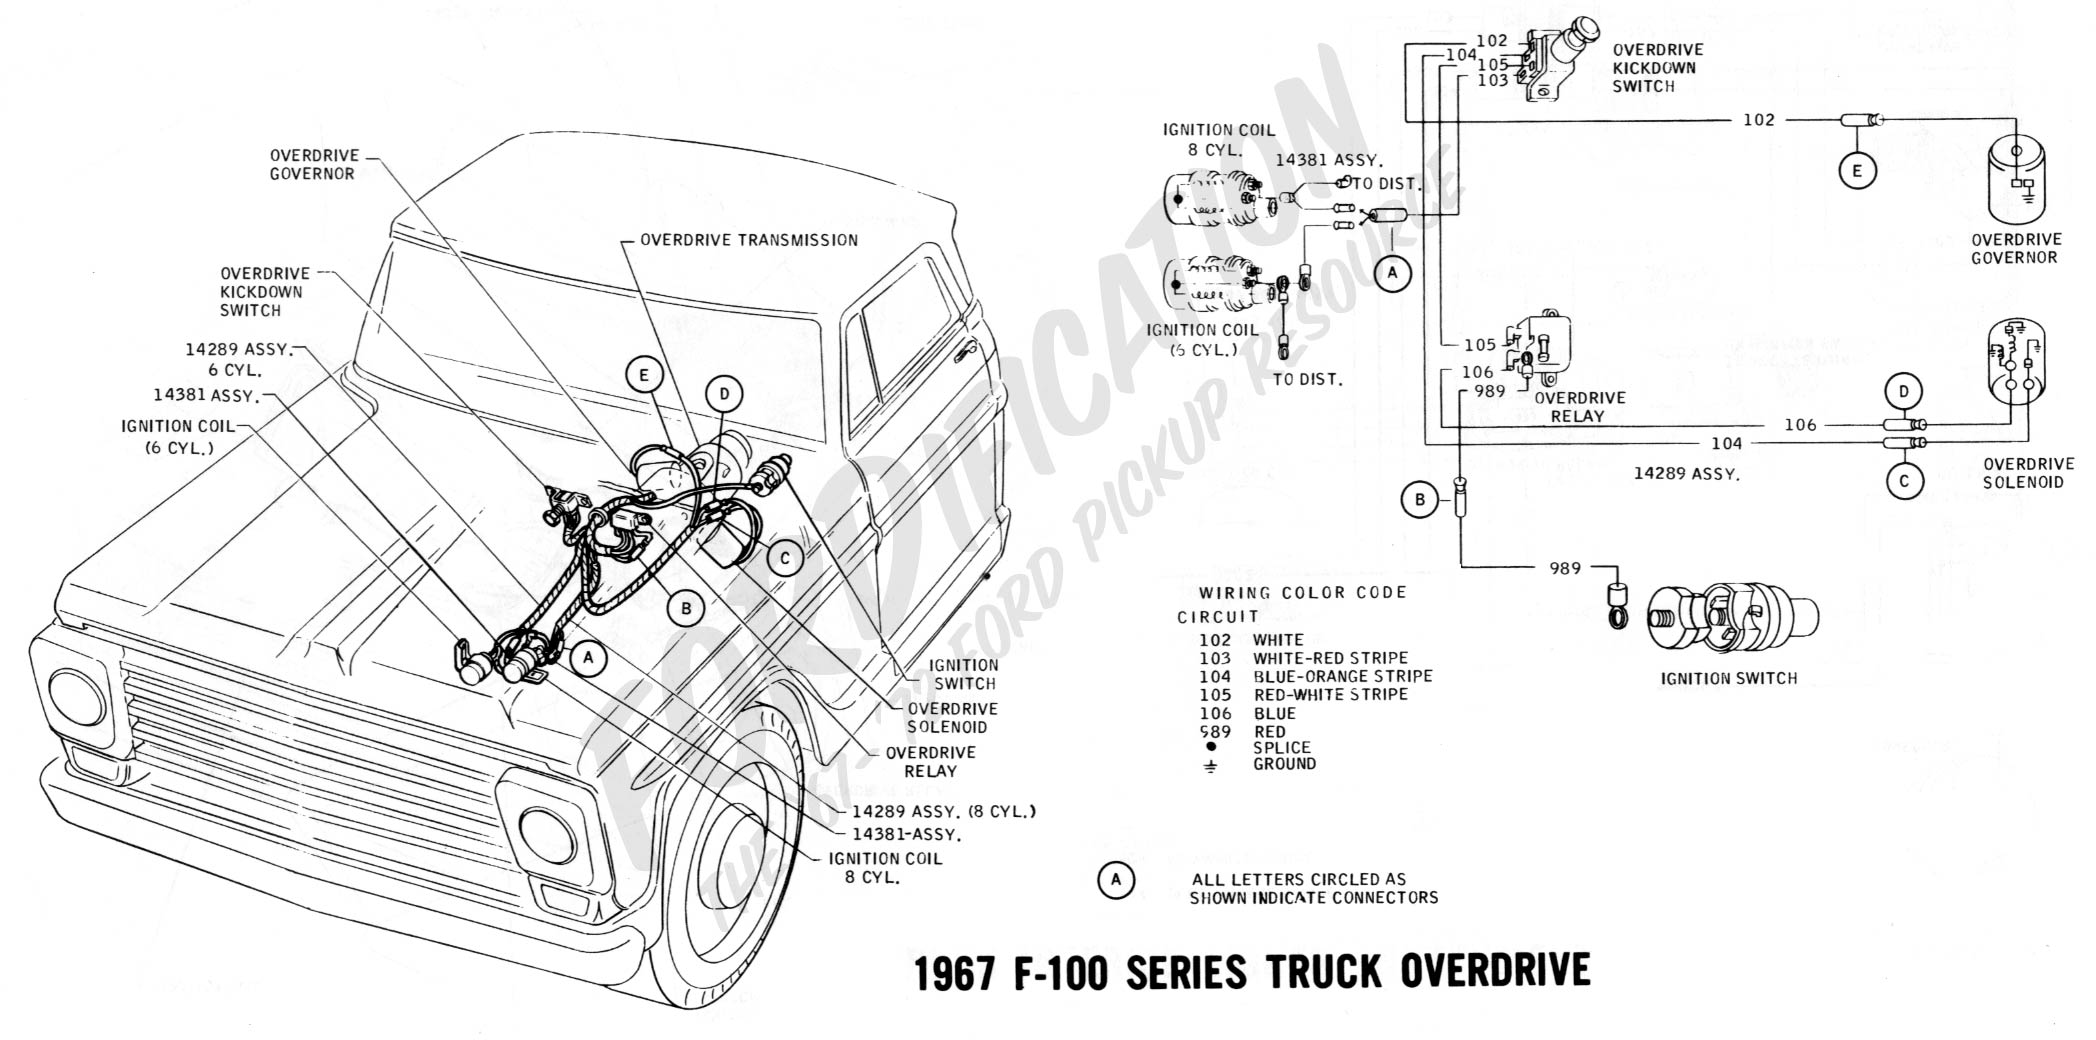 wiring 1967overdrive2 ford truck technical drawings and schematics section h wiring  at love-stories.co